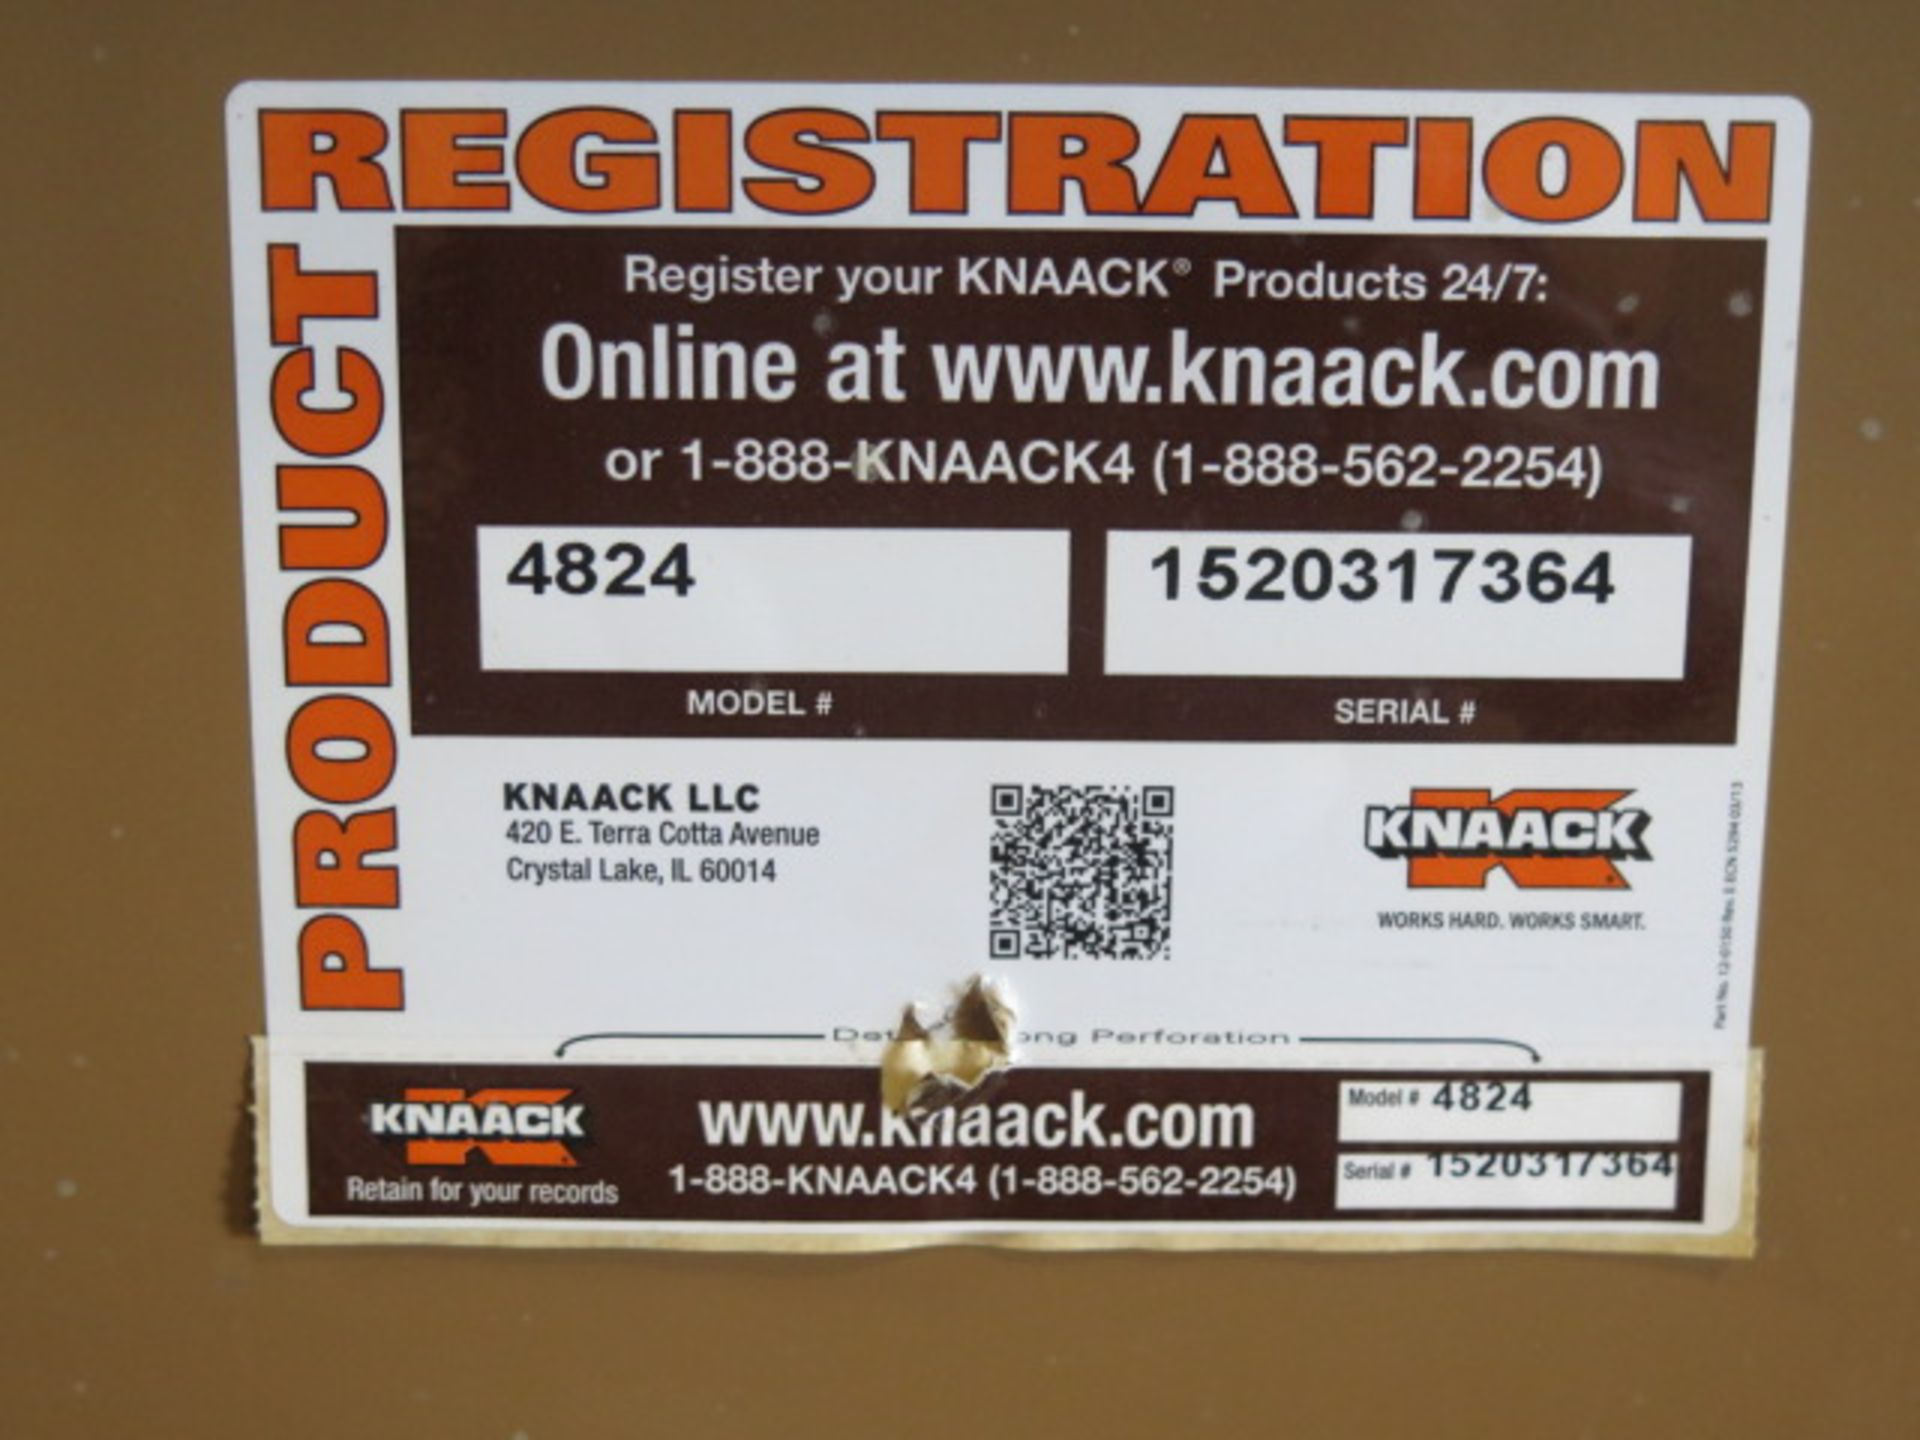 Knaack 4824 Rolling Job Box w/ 240V Extension Cords (SOLD AS-IS - NO WARRANTY) - Image 7 of 7